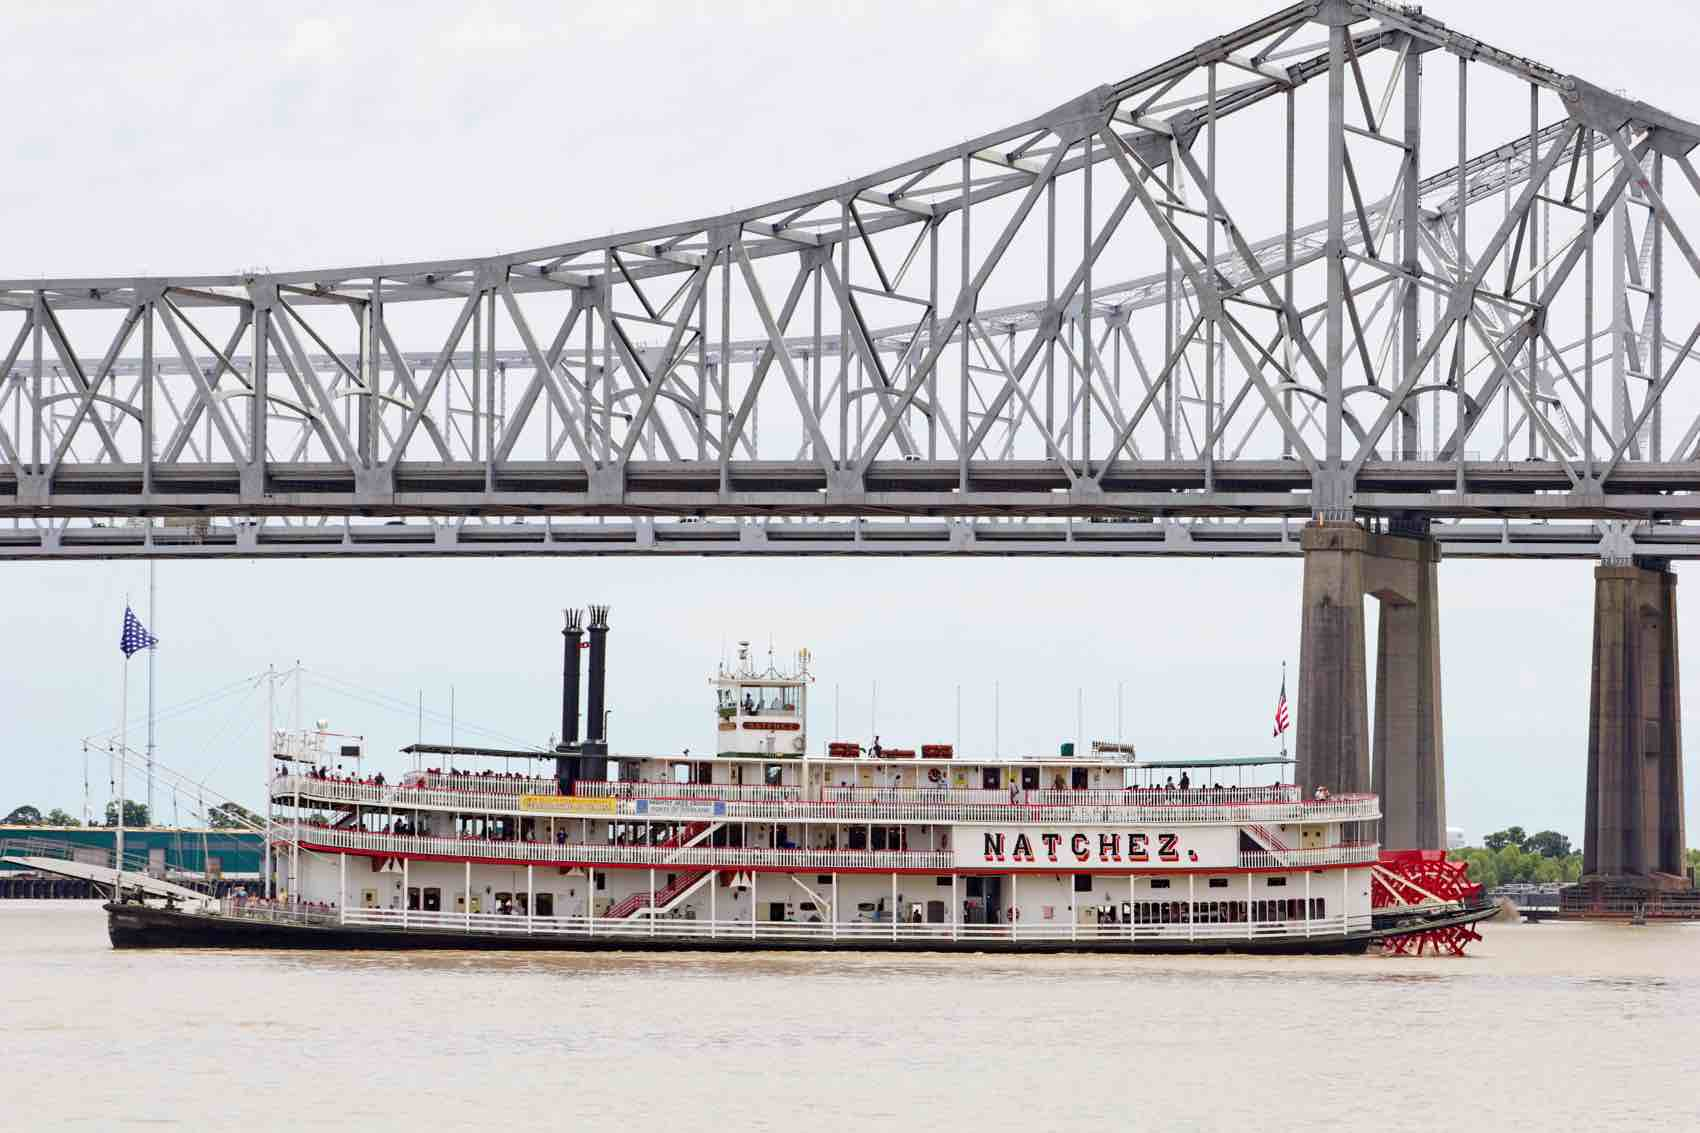 Natchez riverboat at the Crescent City Bridges on the Mississippi with tourists on board on one of its daily tours.